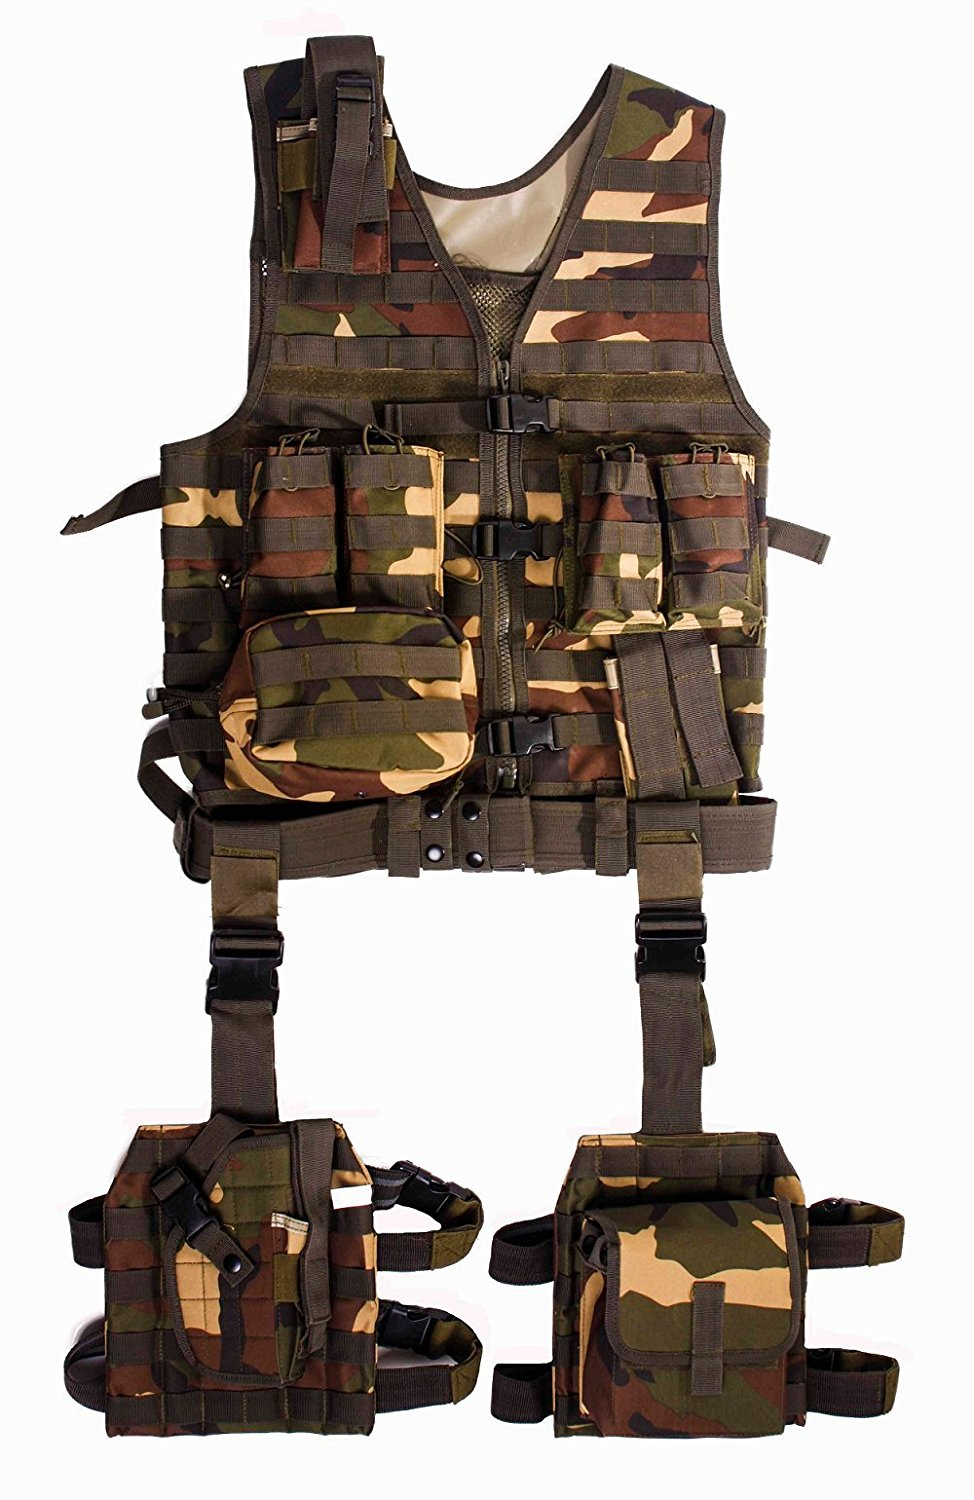 Global Sportsman Tactical Assault Combat Military Scenario MOLLE 10 Piece Ambidextrous Complete Kit Set Deluxe Modular Web Vest w/ Hydration Bladder Pocket + 2 Open-Top Double Mag Ammo Pouches + Pistol Mags + Cell Phone Radio Pouch + Adjustable Duty Belt + Medical Utility Pouch + Dropleg Pistol